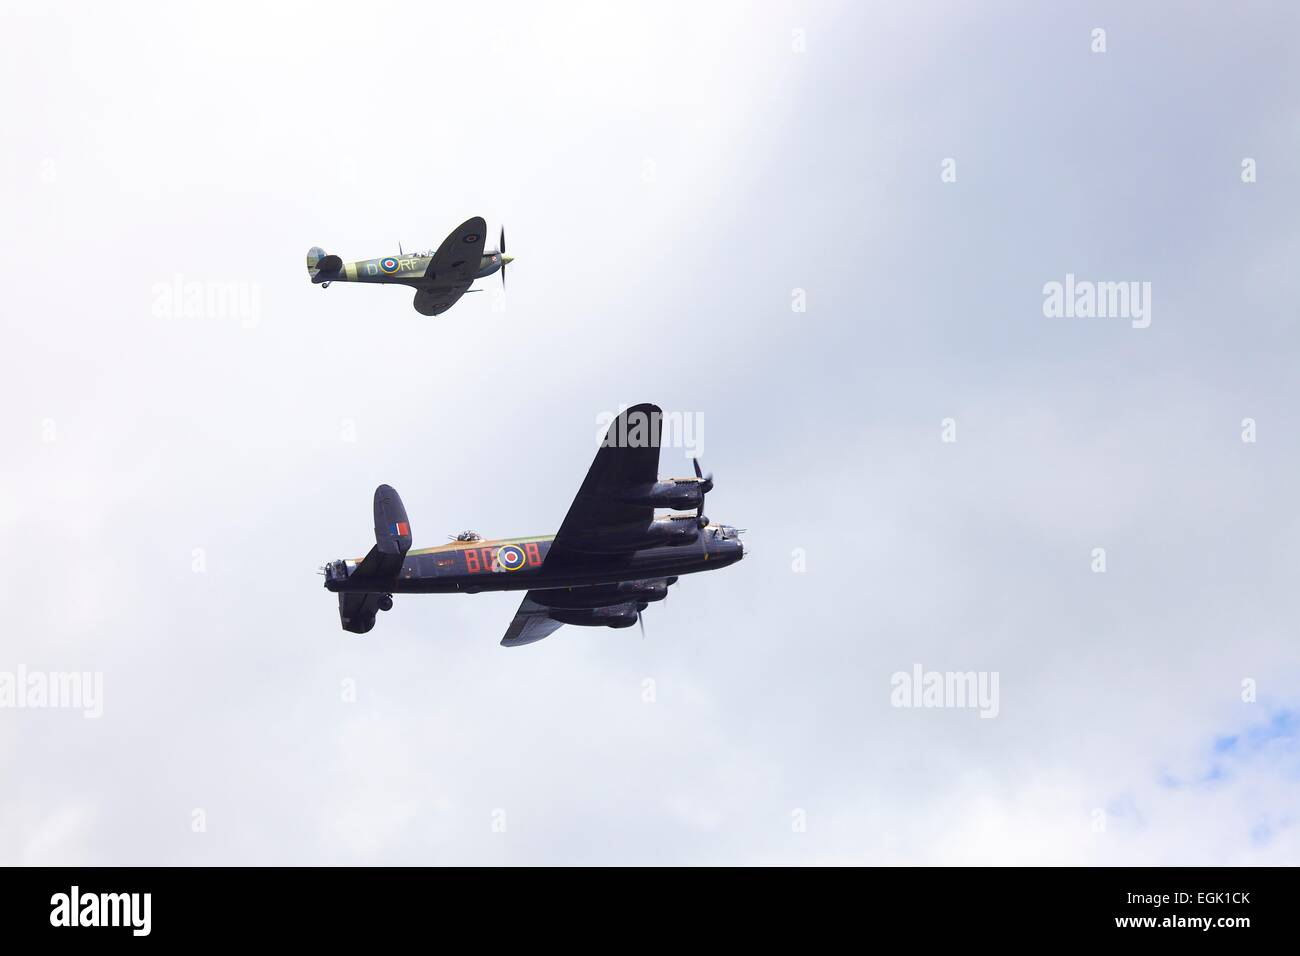 Battle of Britain Memorial Flight. Spitfire Mk Vb. Avro Lancaster B1 Bomber. - Stock Image